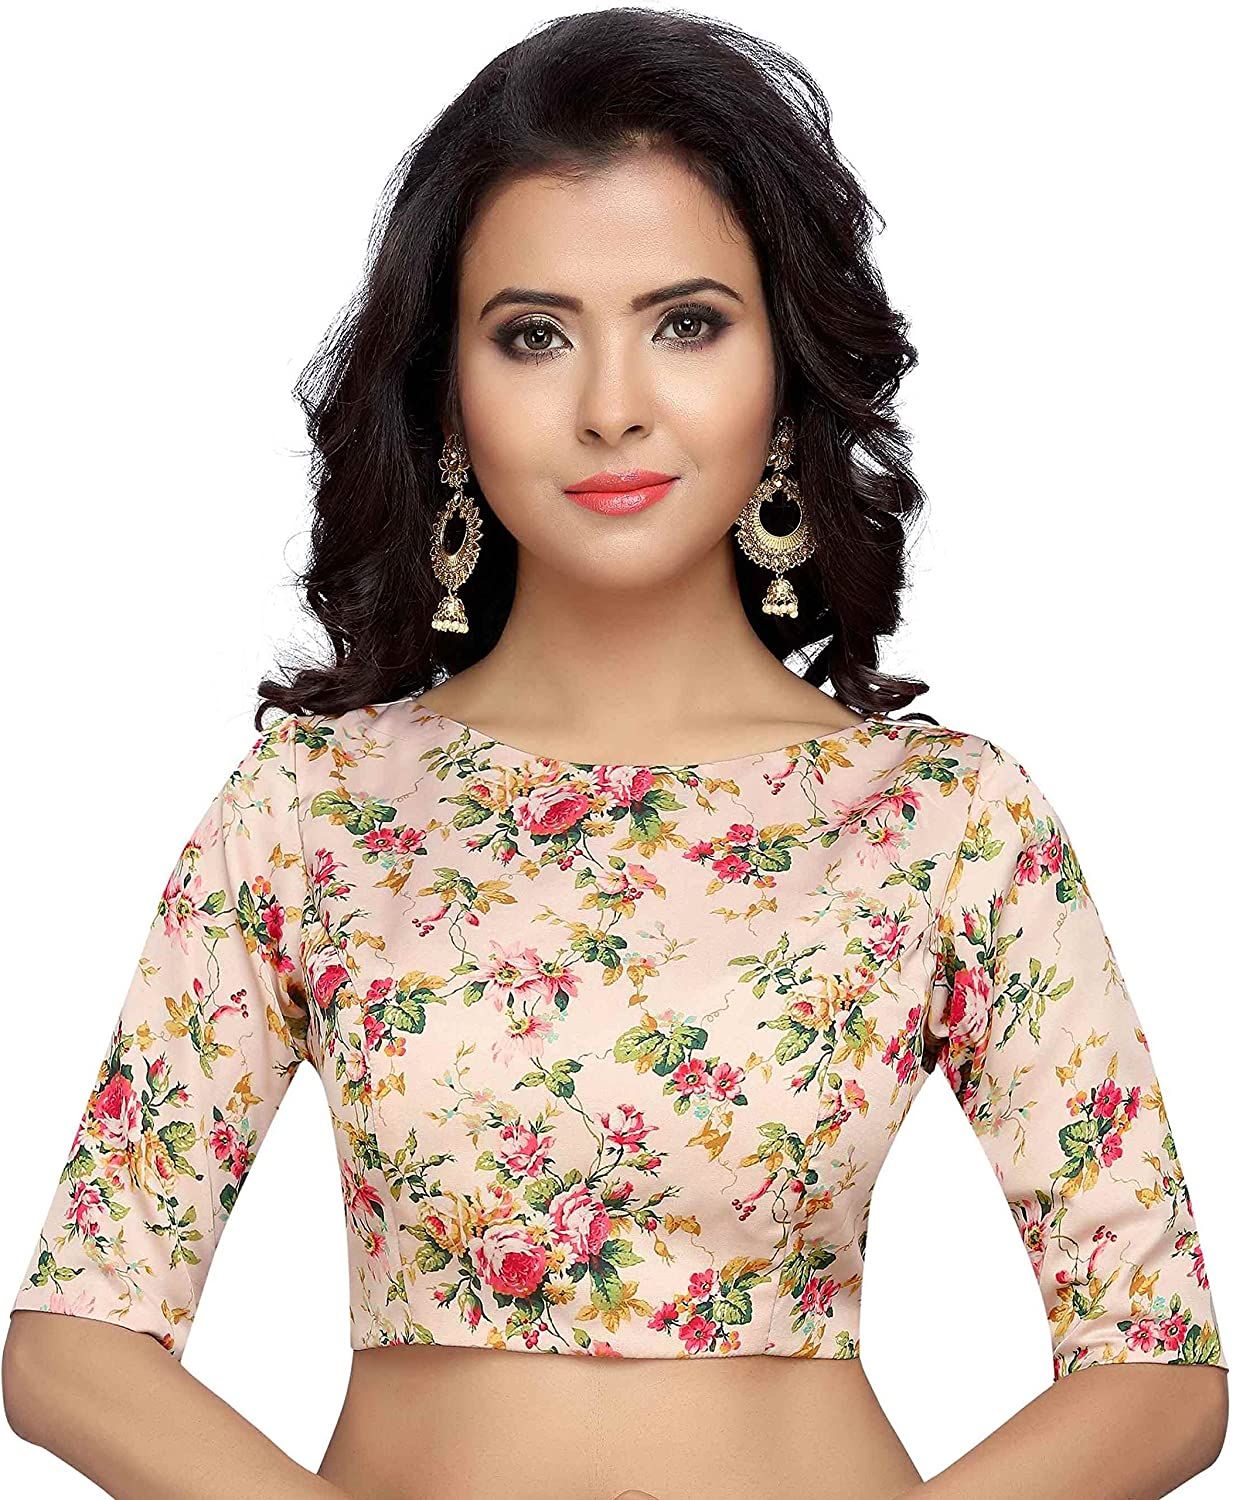 Pink Color Designer Boat Neck Readymade saree blouseFloral Embroidery Party Wear Readymade blouse